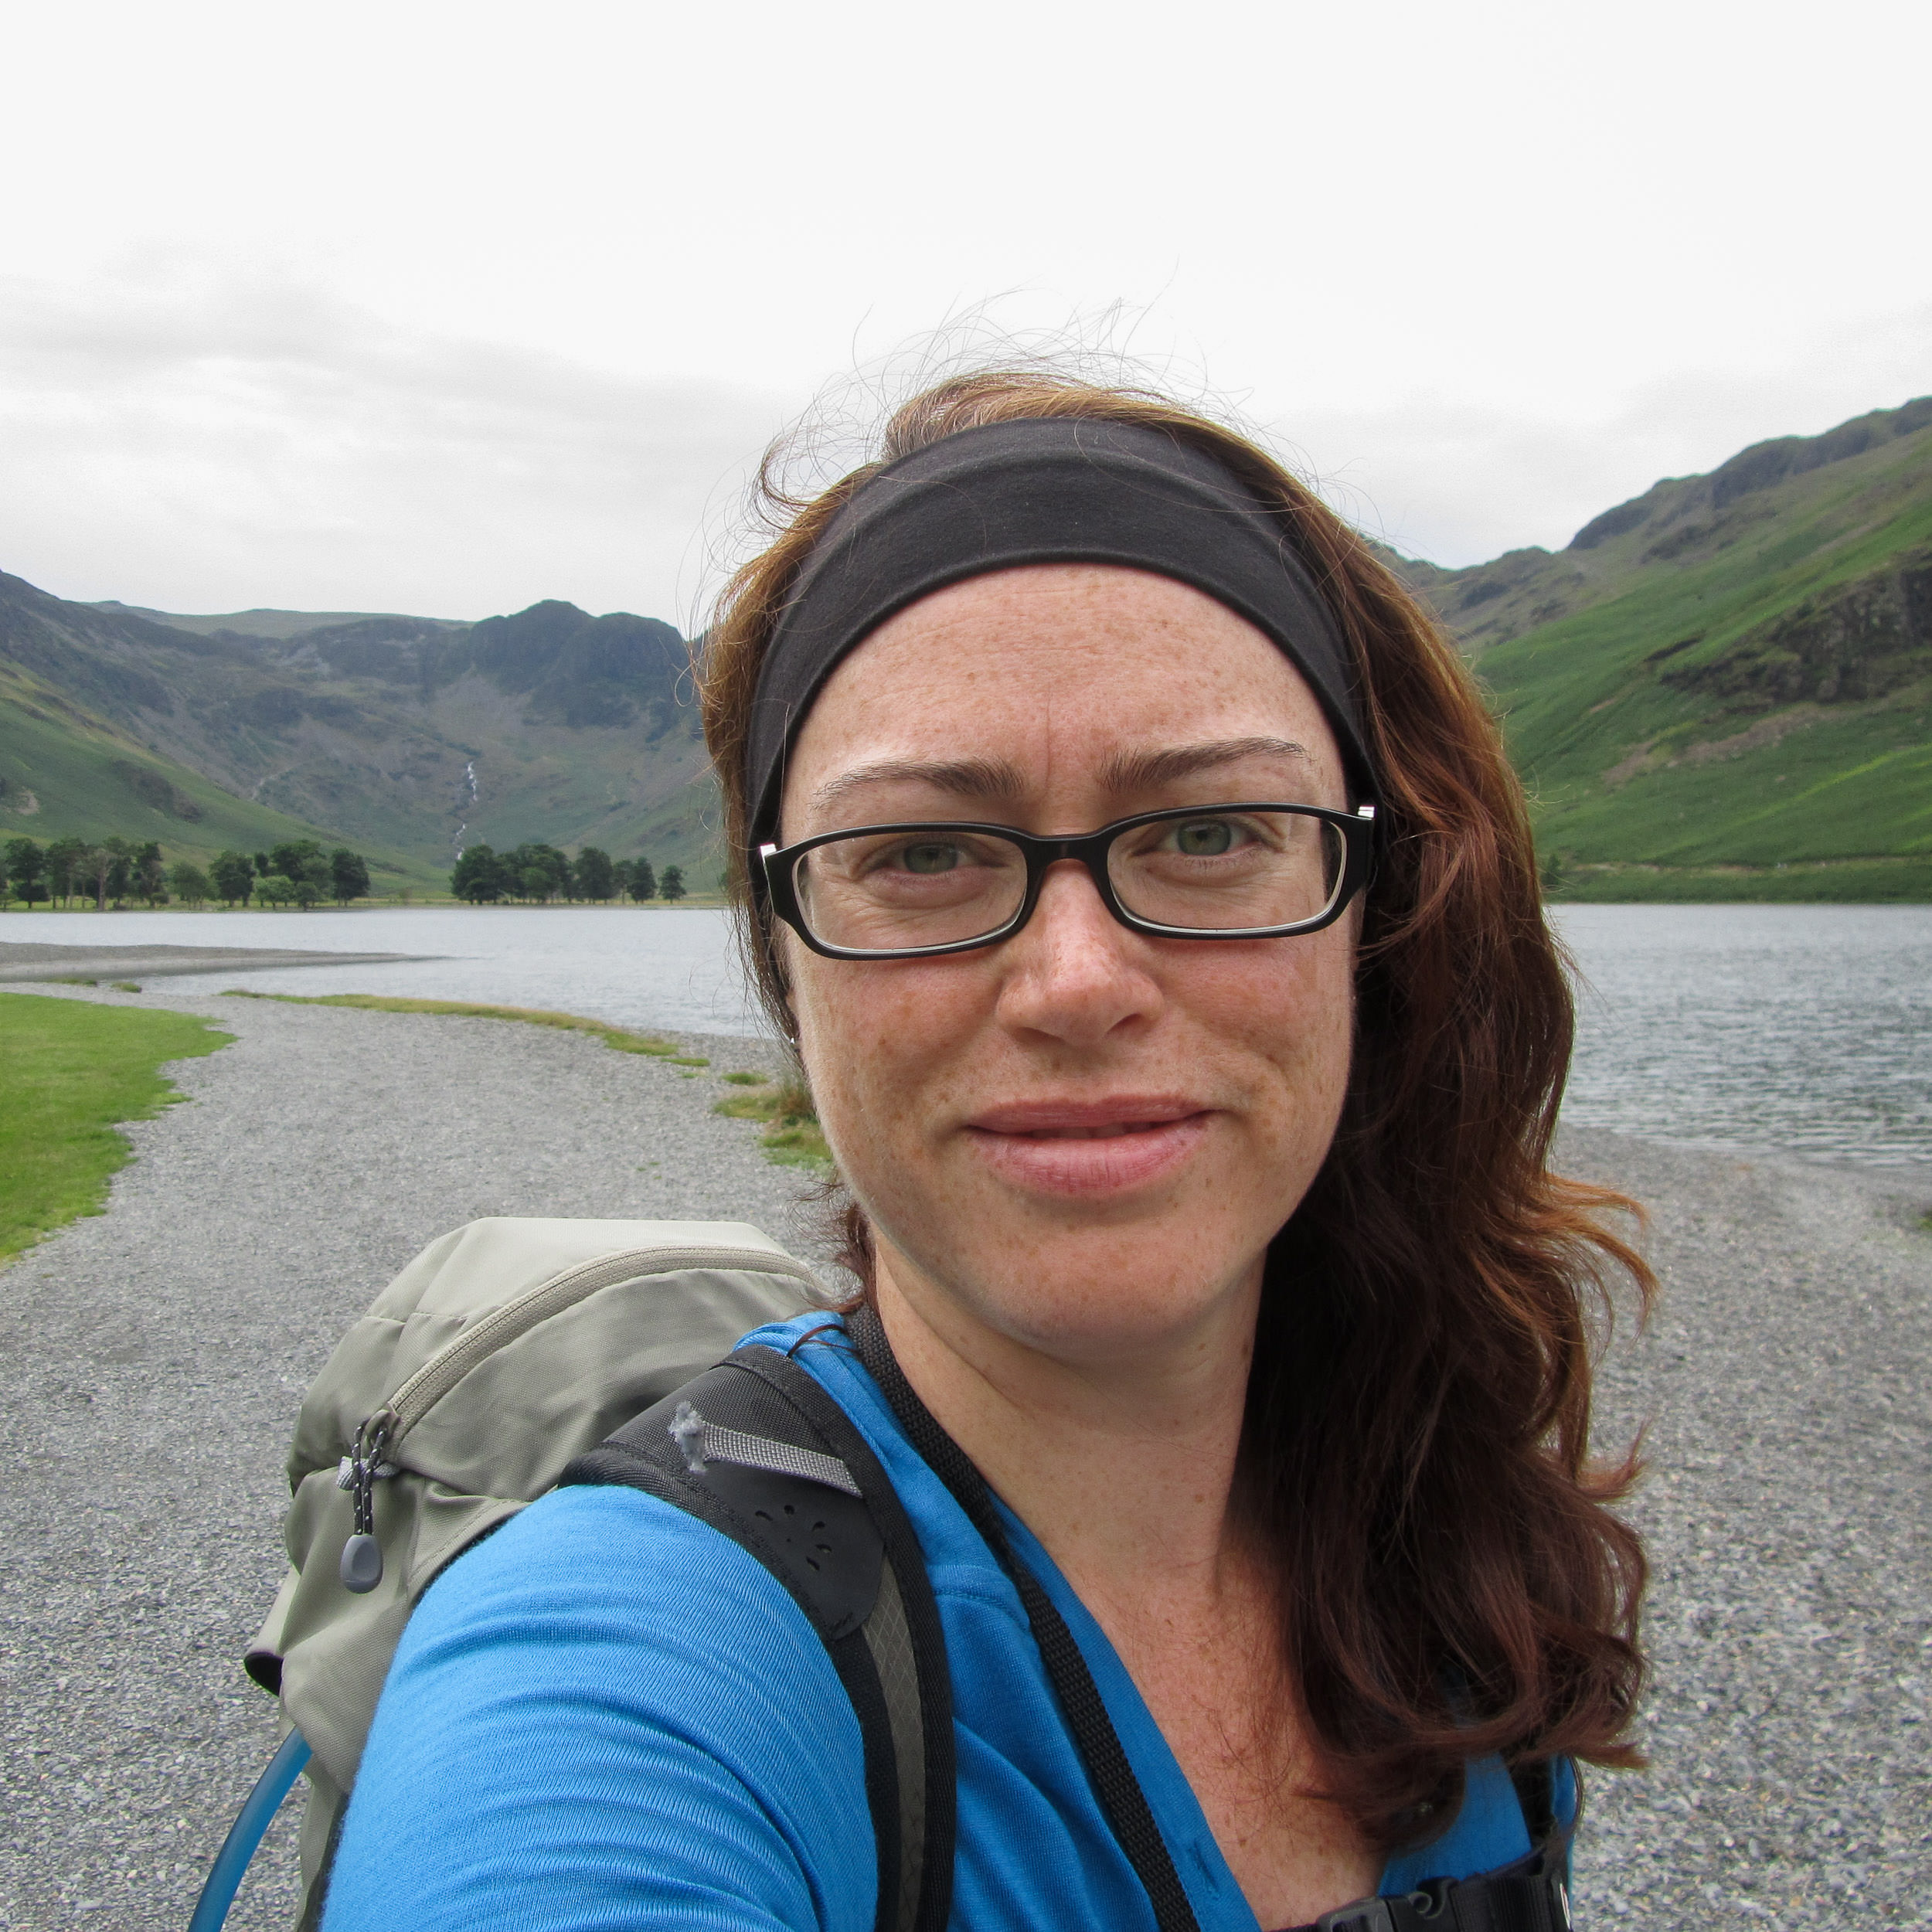 Woman taking a selfie while hiking sole in the Lake District